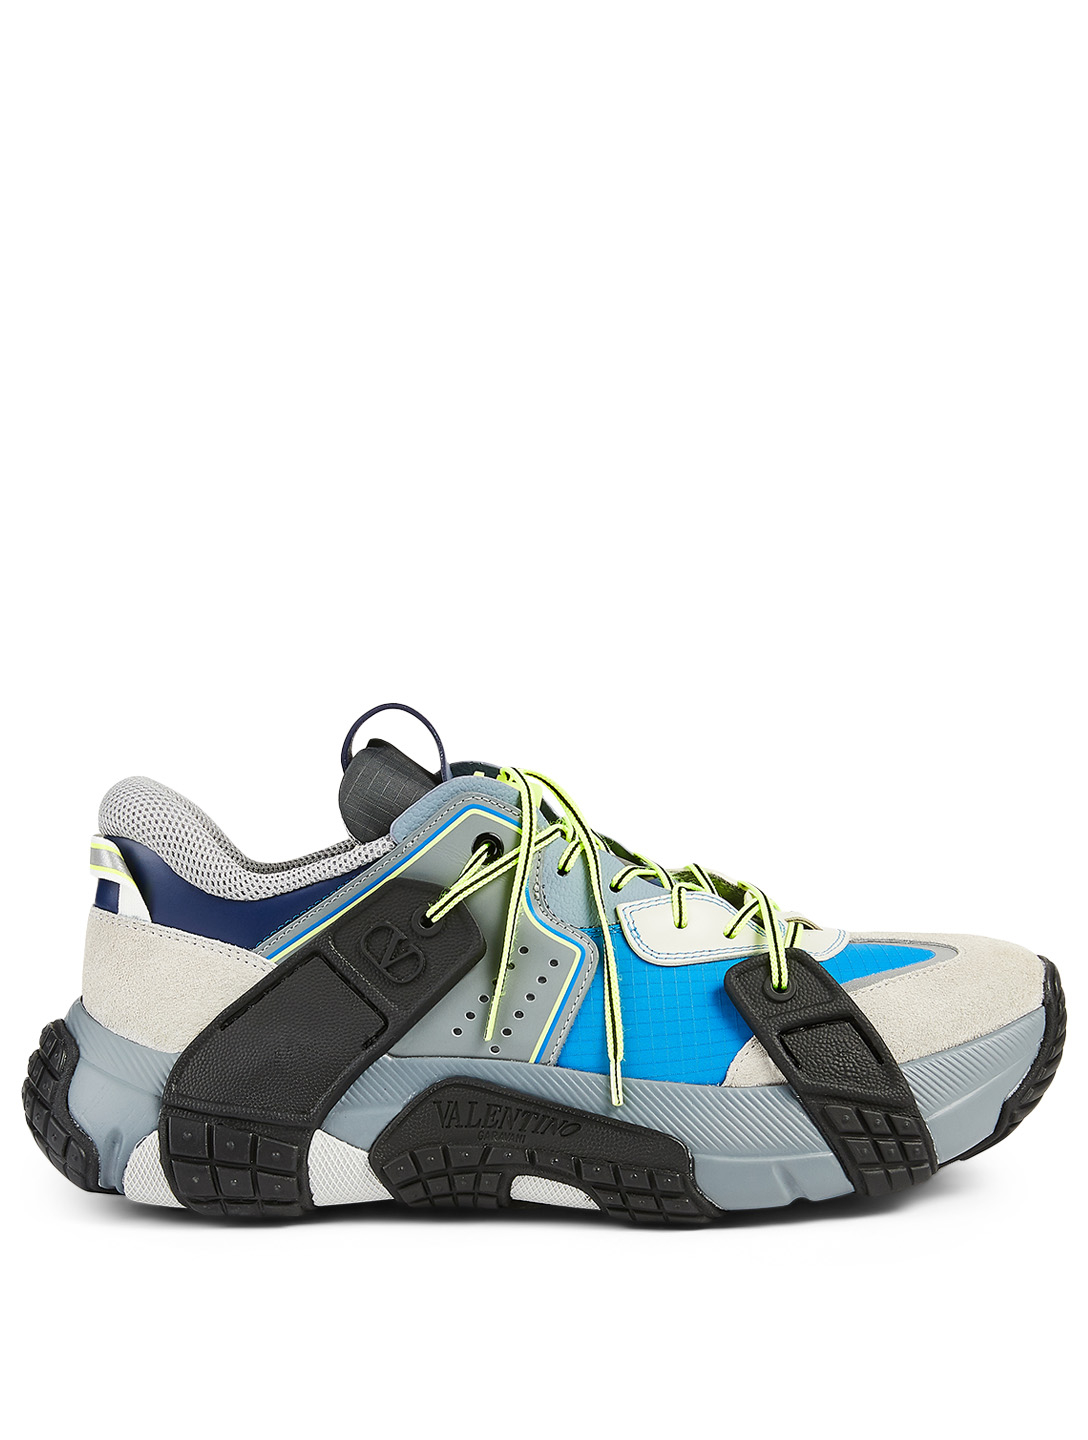 VALENTINO GARAVANI VLTN Wod Fabric, Leather And Suede Sneakers Men's Grey